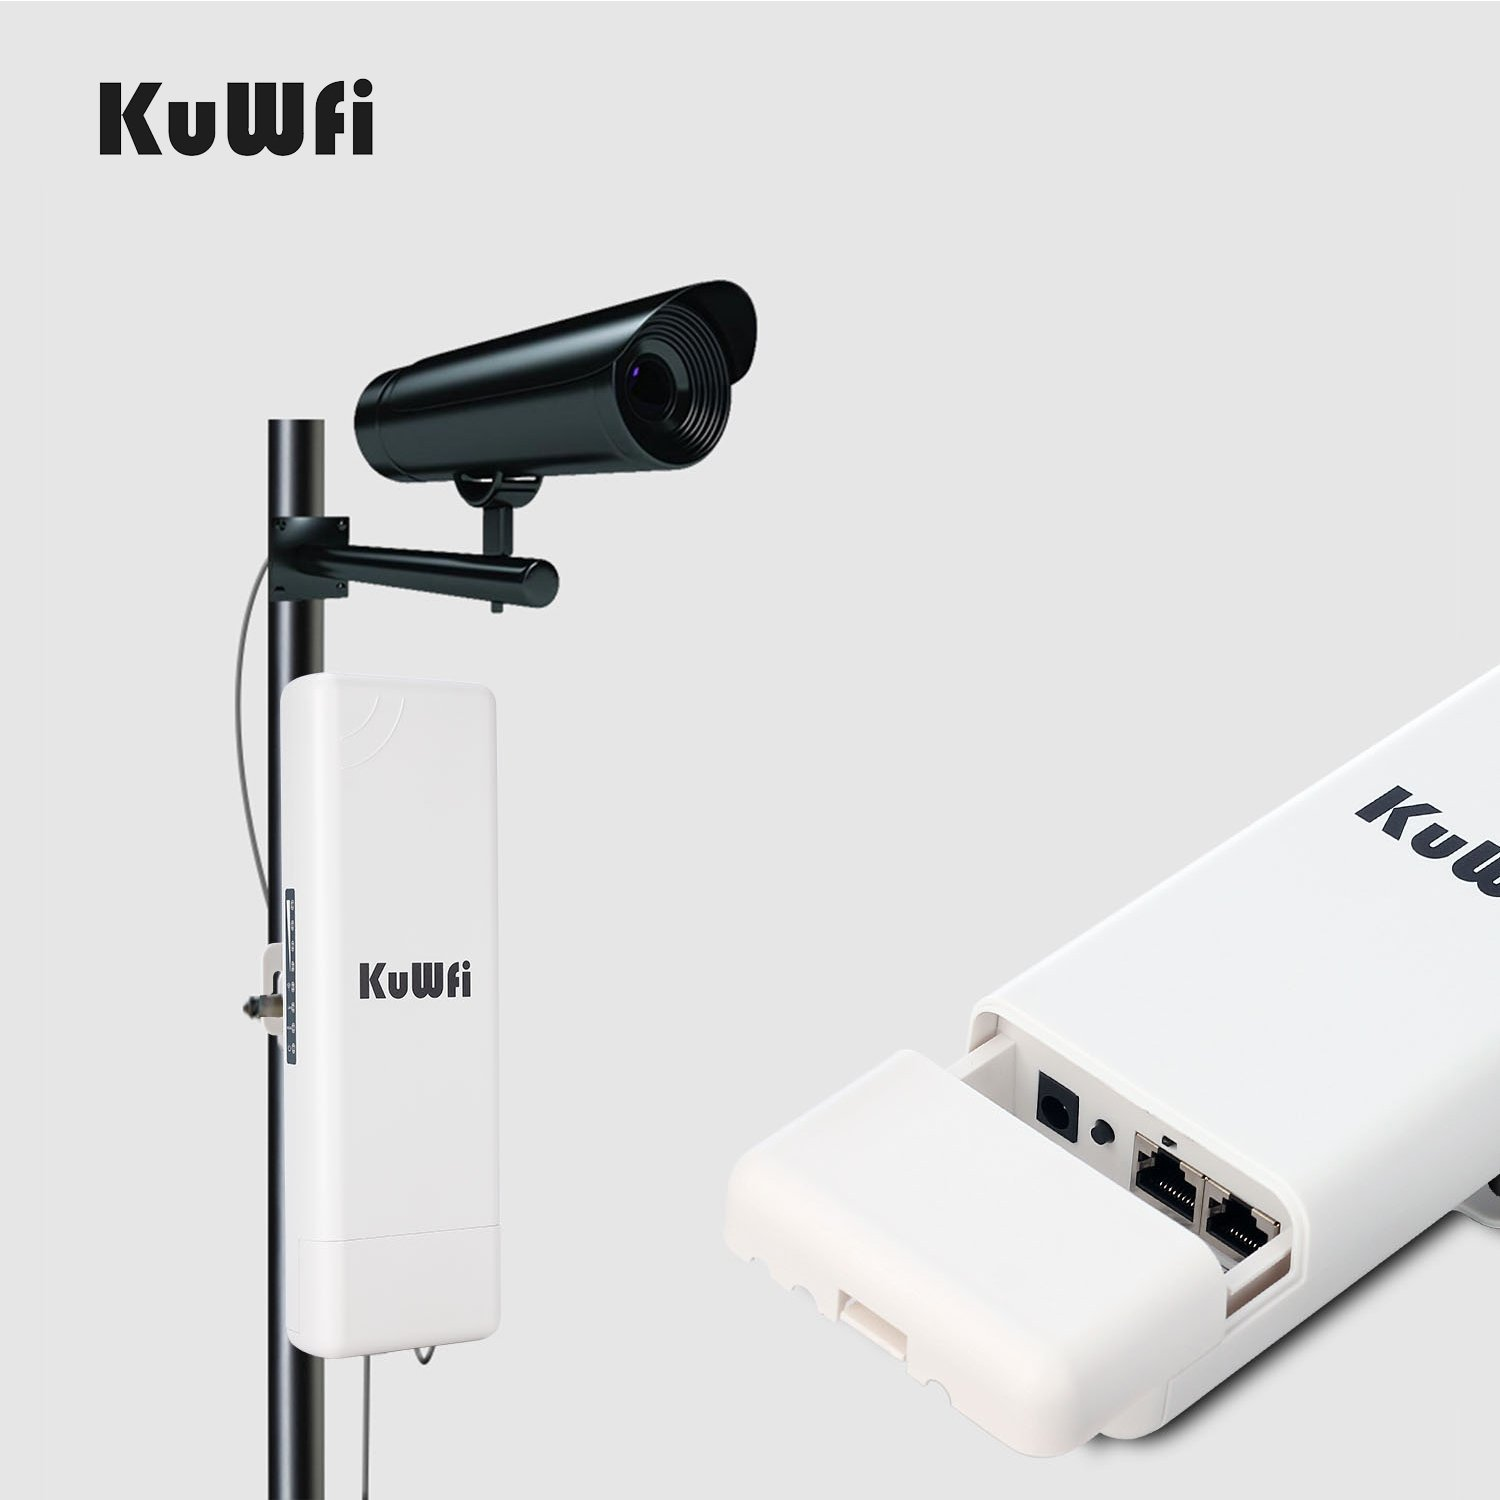 KuWFi 150Mbps WiFi Access Point, Waterproof and 50 similar items